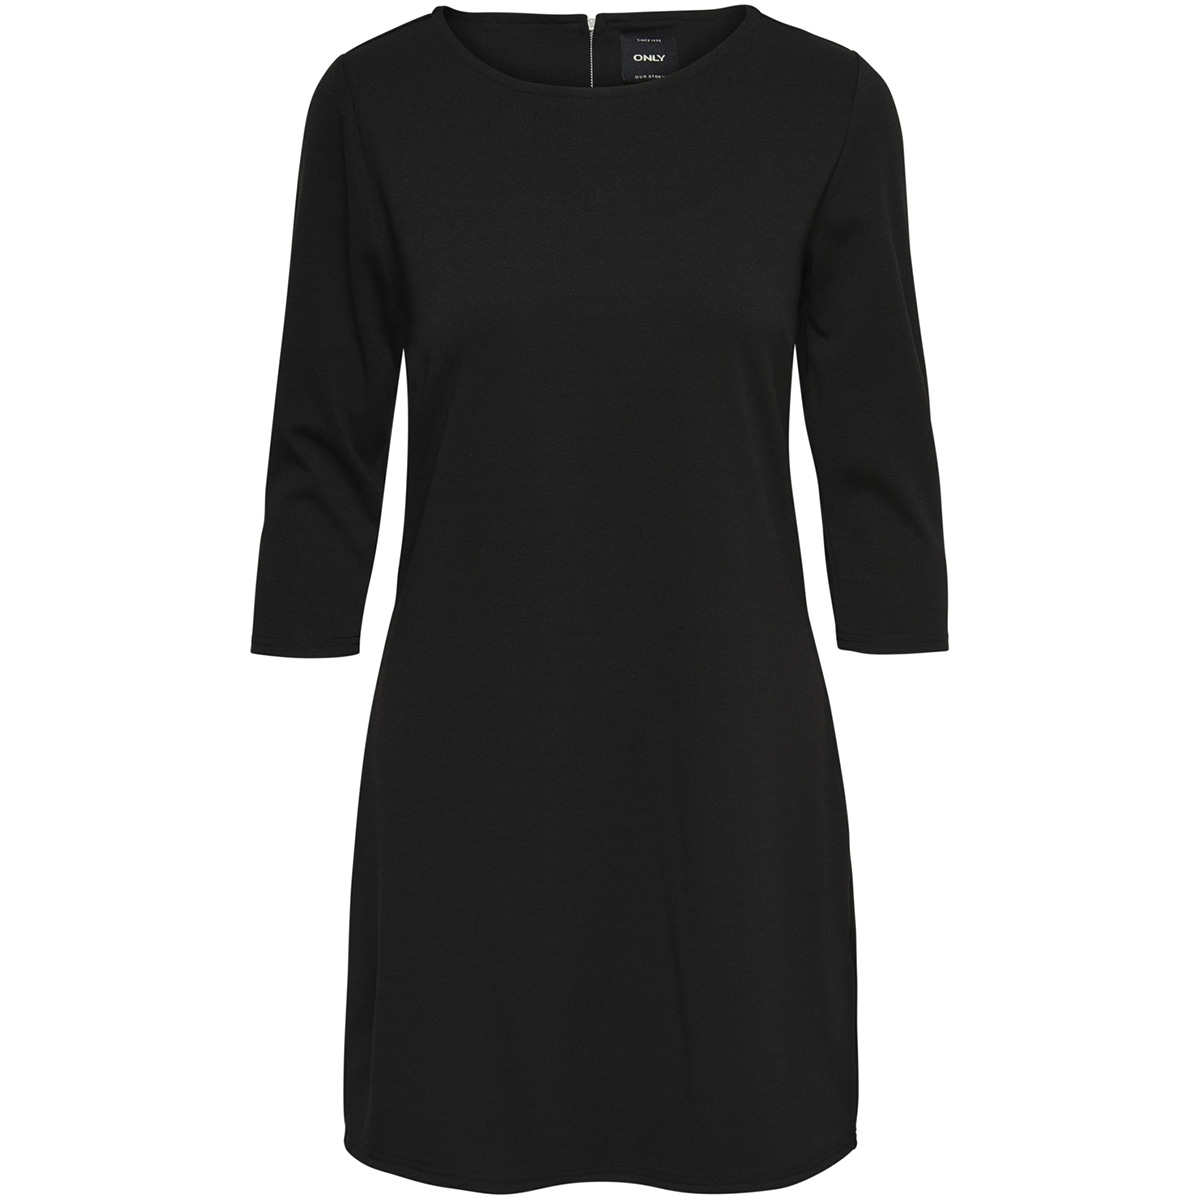 onlbrilliant 3/4 dress jrs noos 15160895 only jurk black